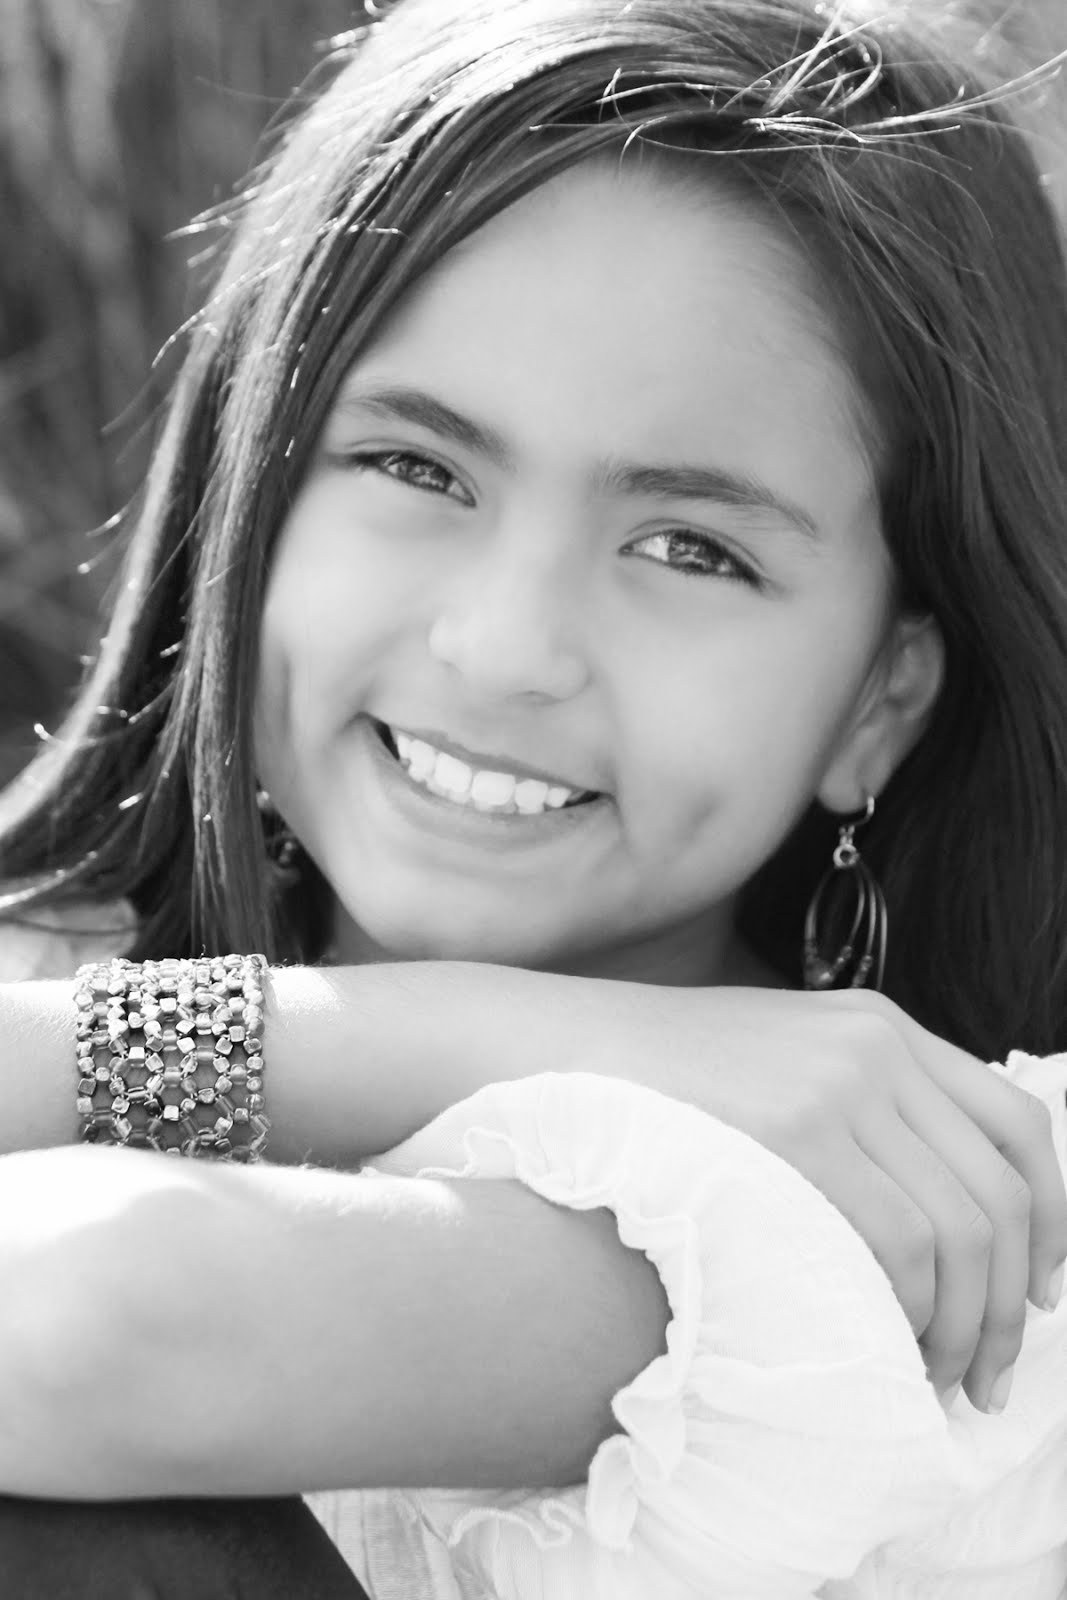 Meet The 2012 2013 National American Miss Jr Preteen Selia